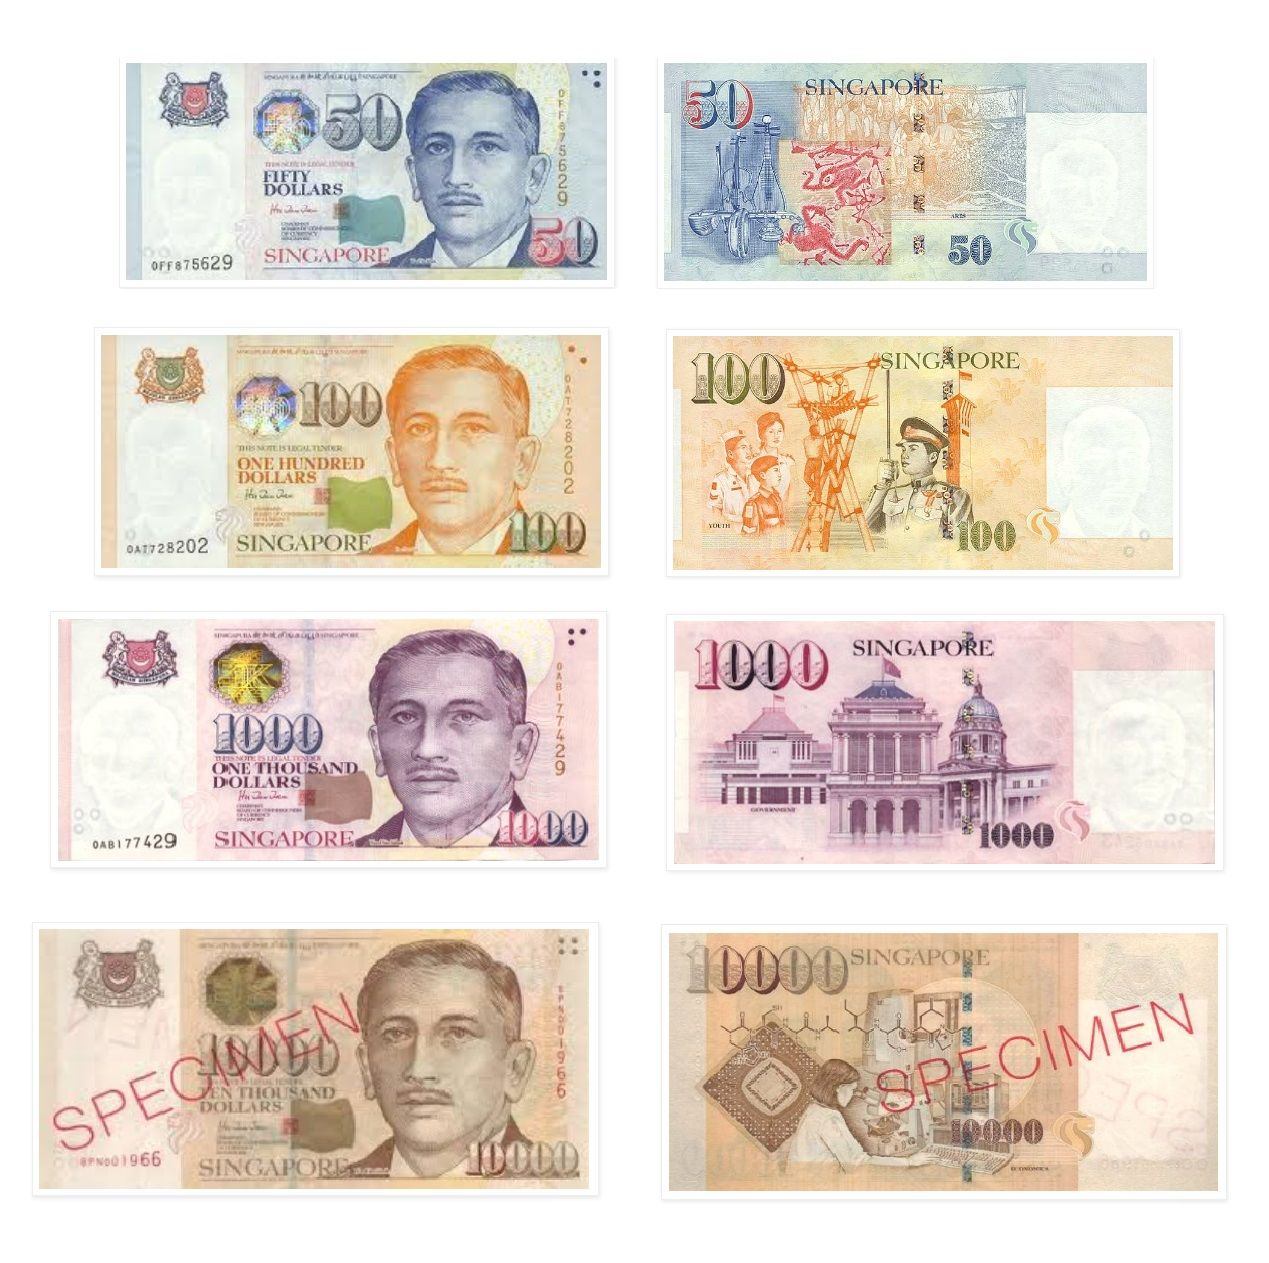 Singapore Banknotes With Images